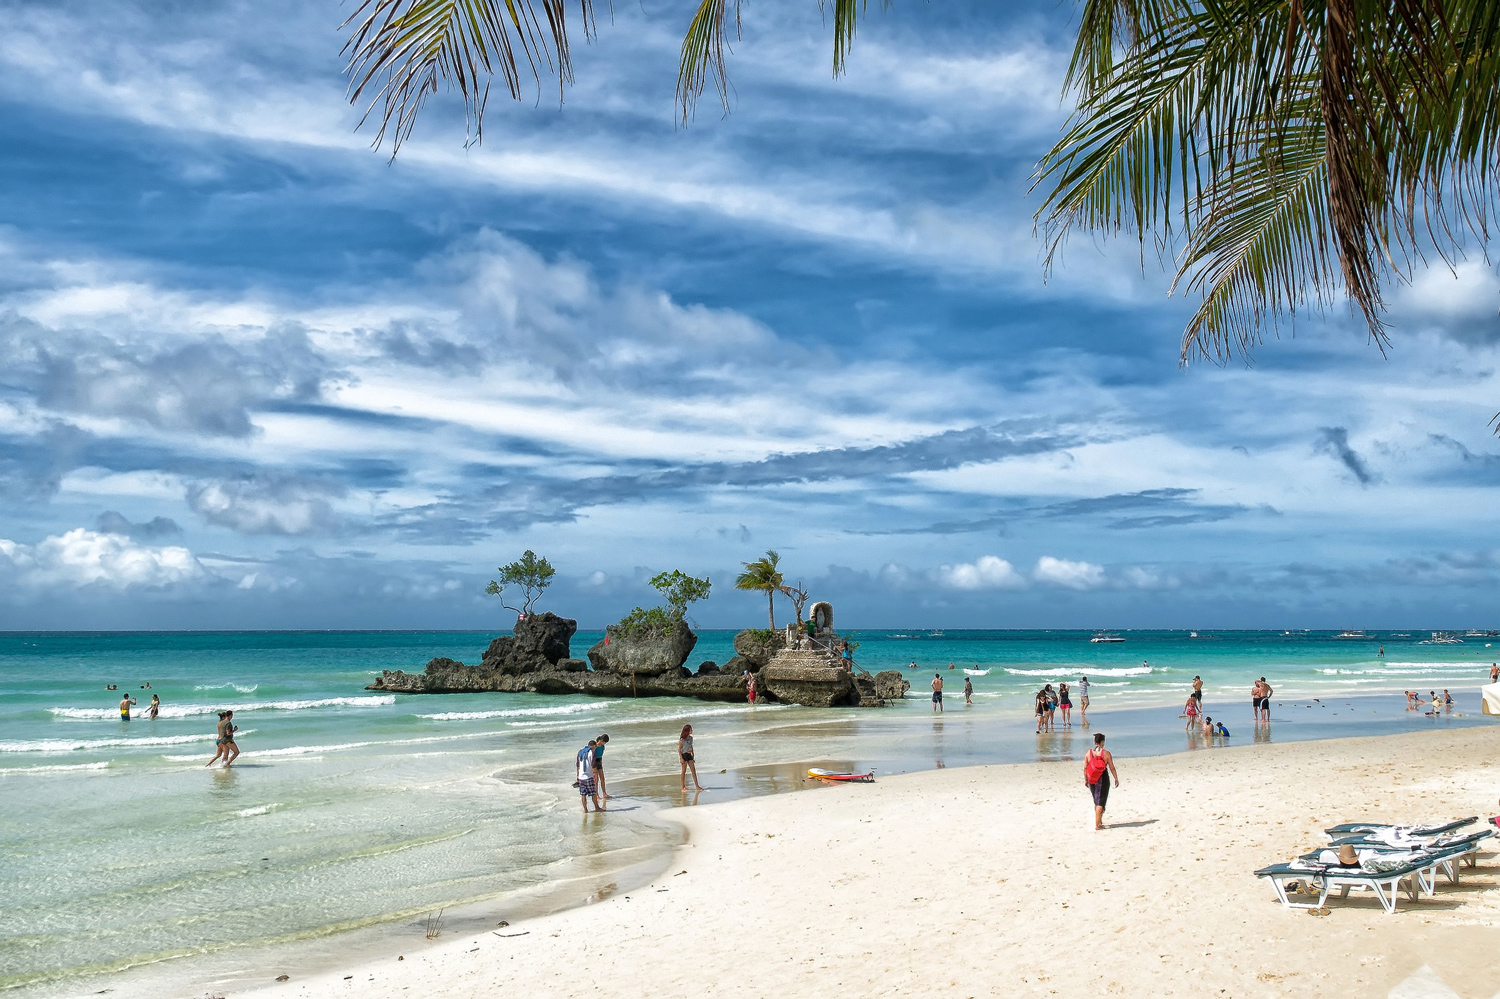 Boracay by Lutz from Flickr, click for source.